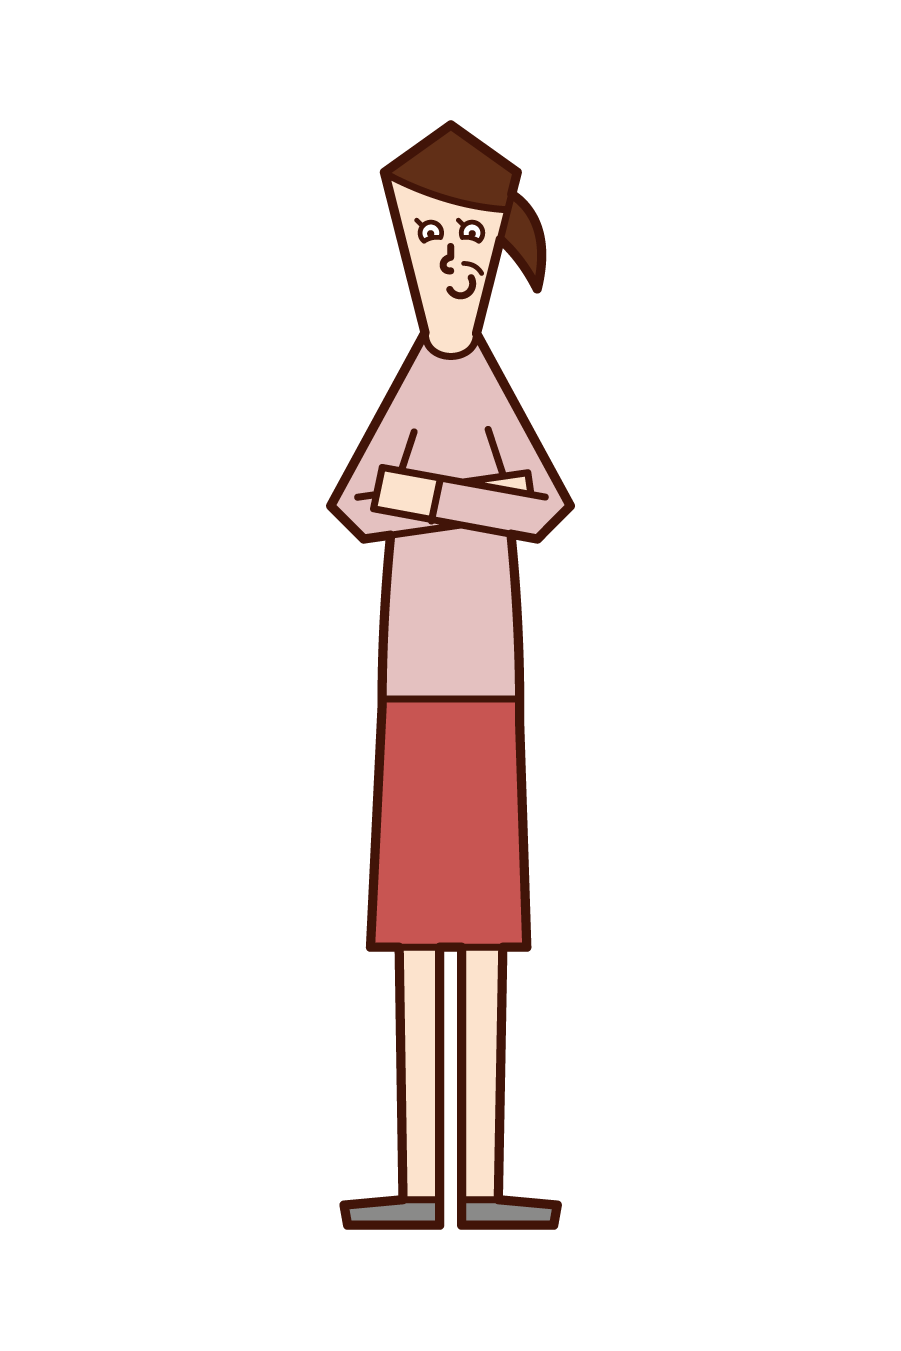 Illustration of a condescending person (woman)